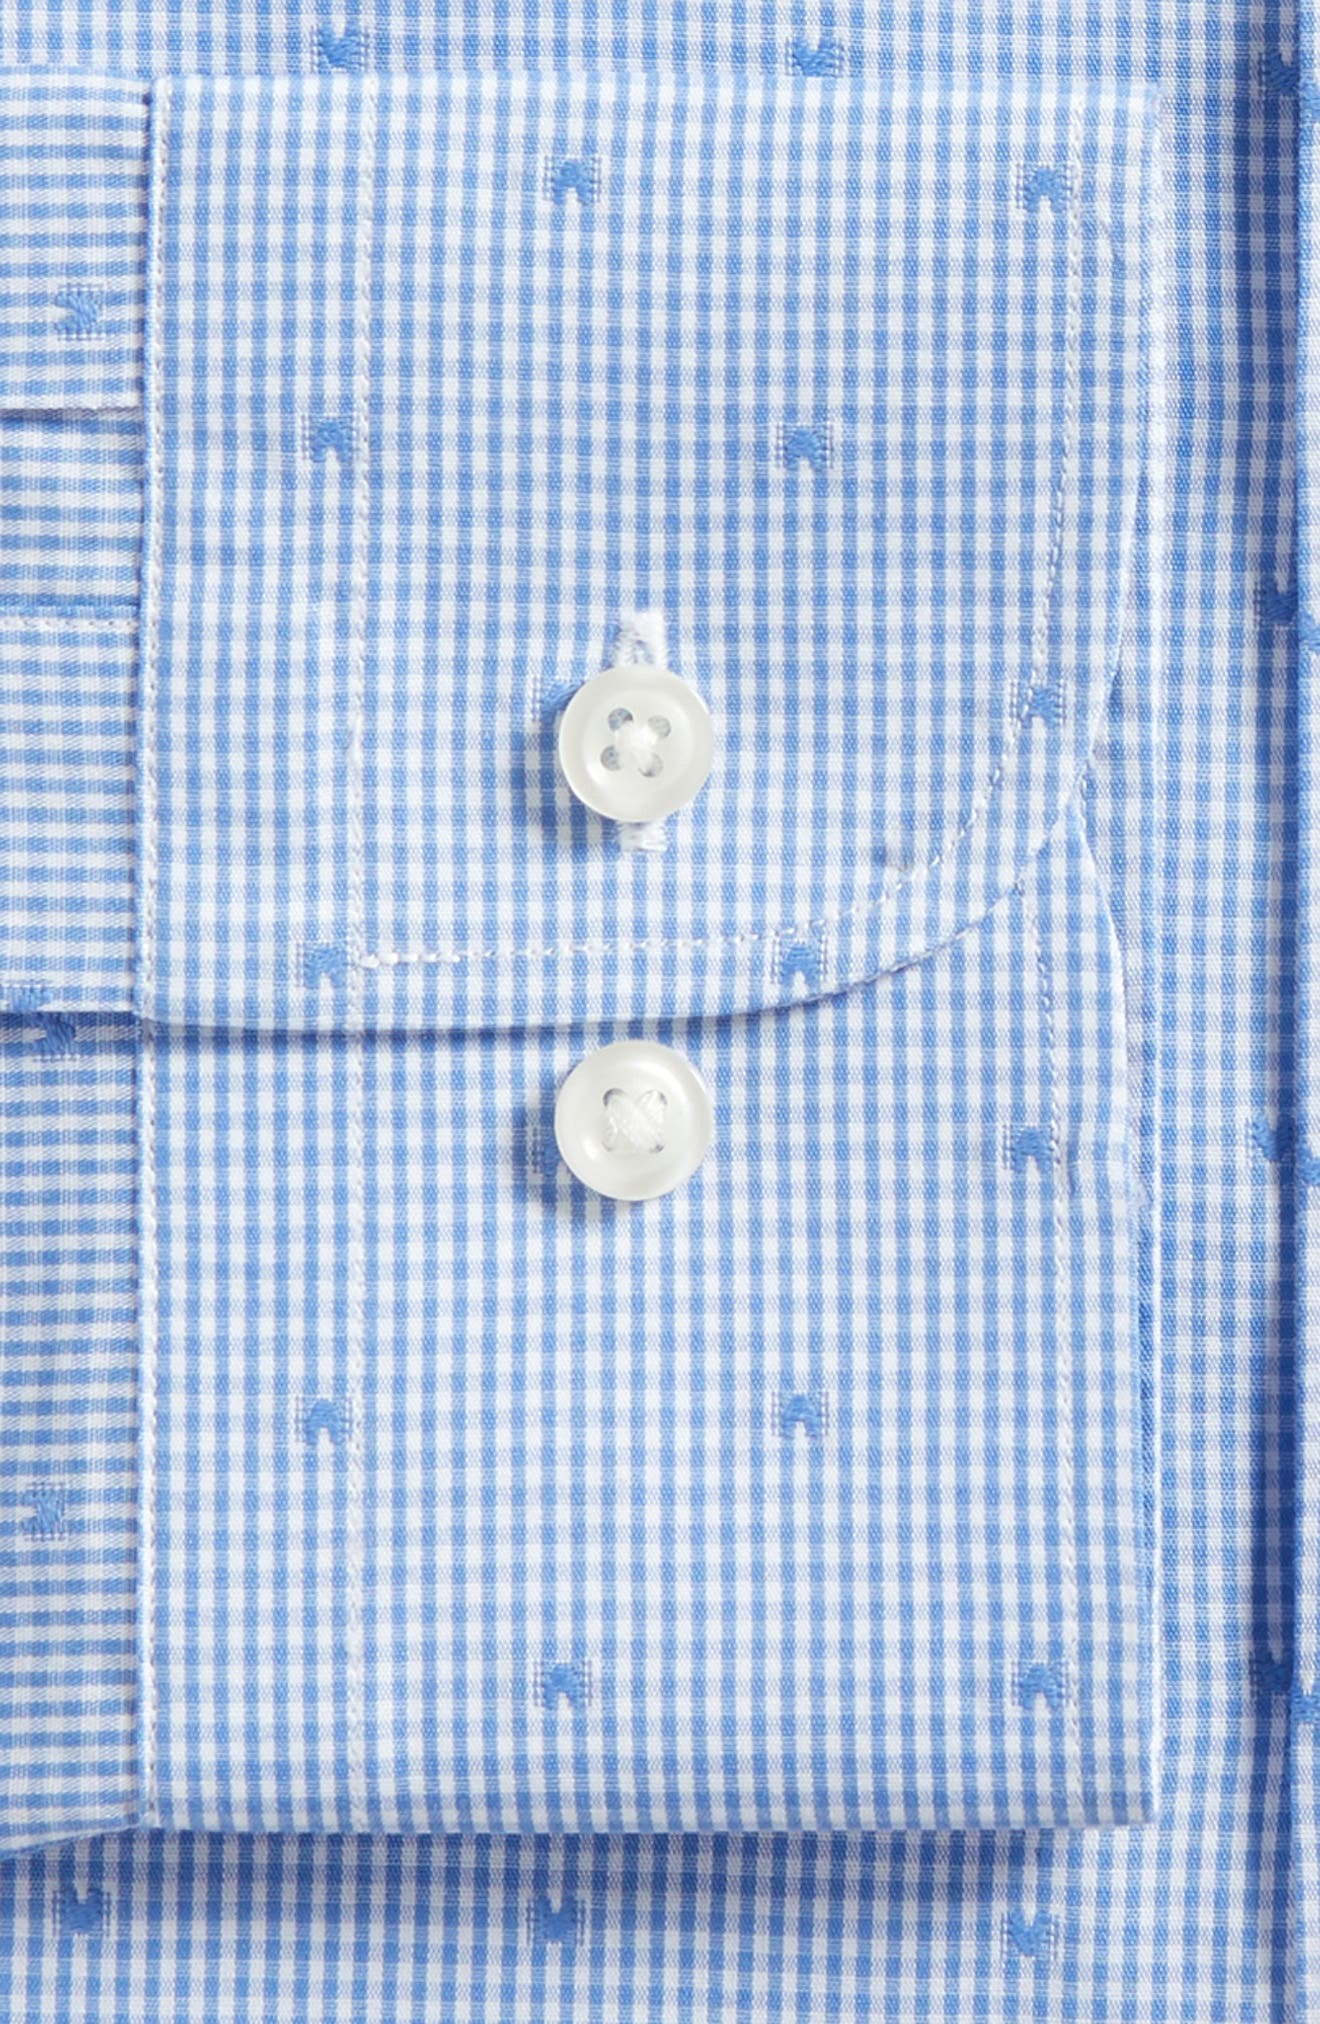 Trim Fit Check Dress Shirt,                             Alternate thumbnail 5, color,                             Blue Yonder